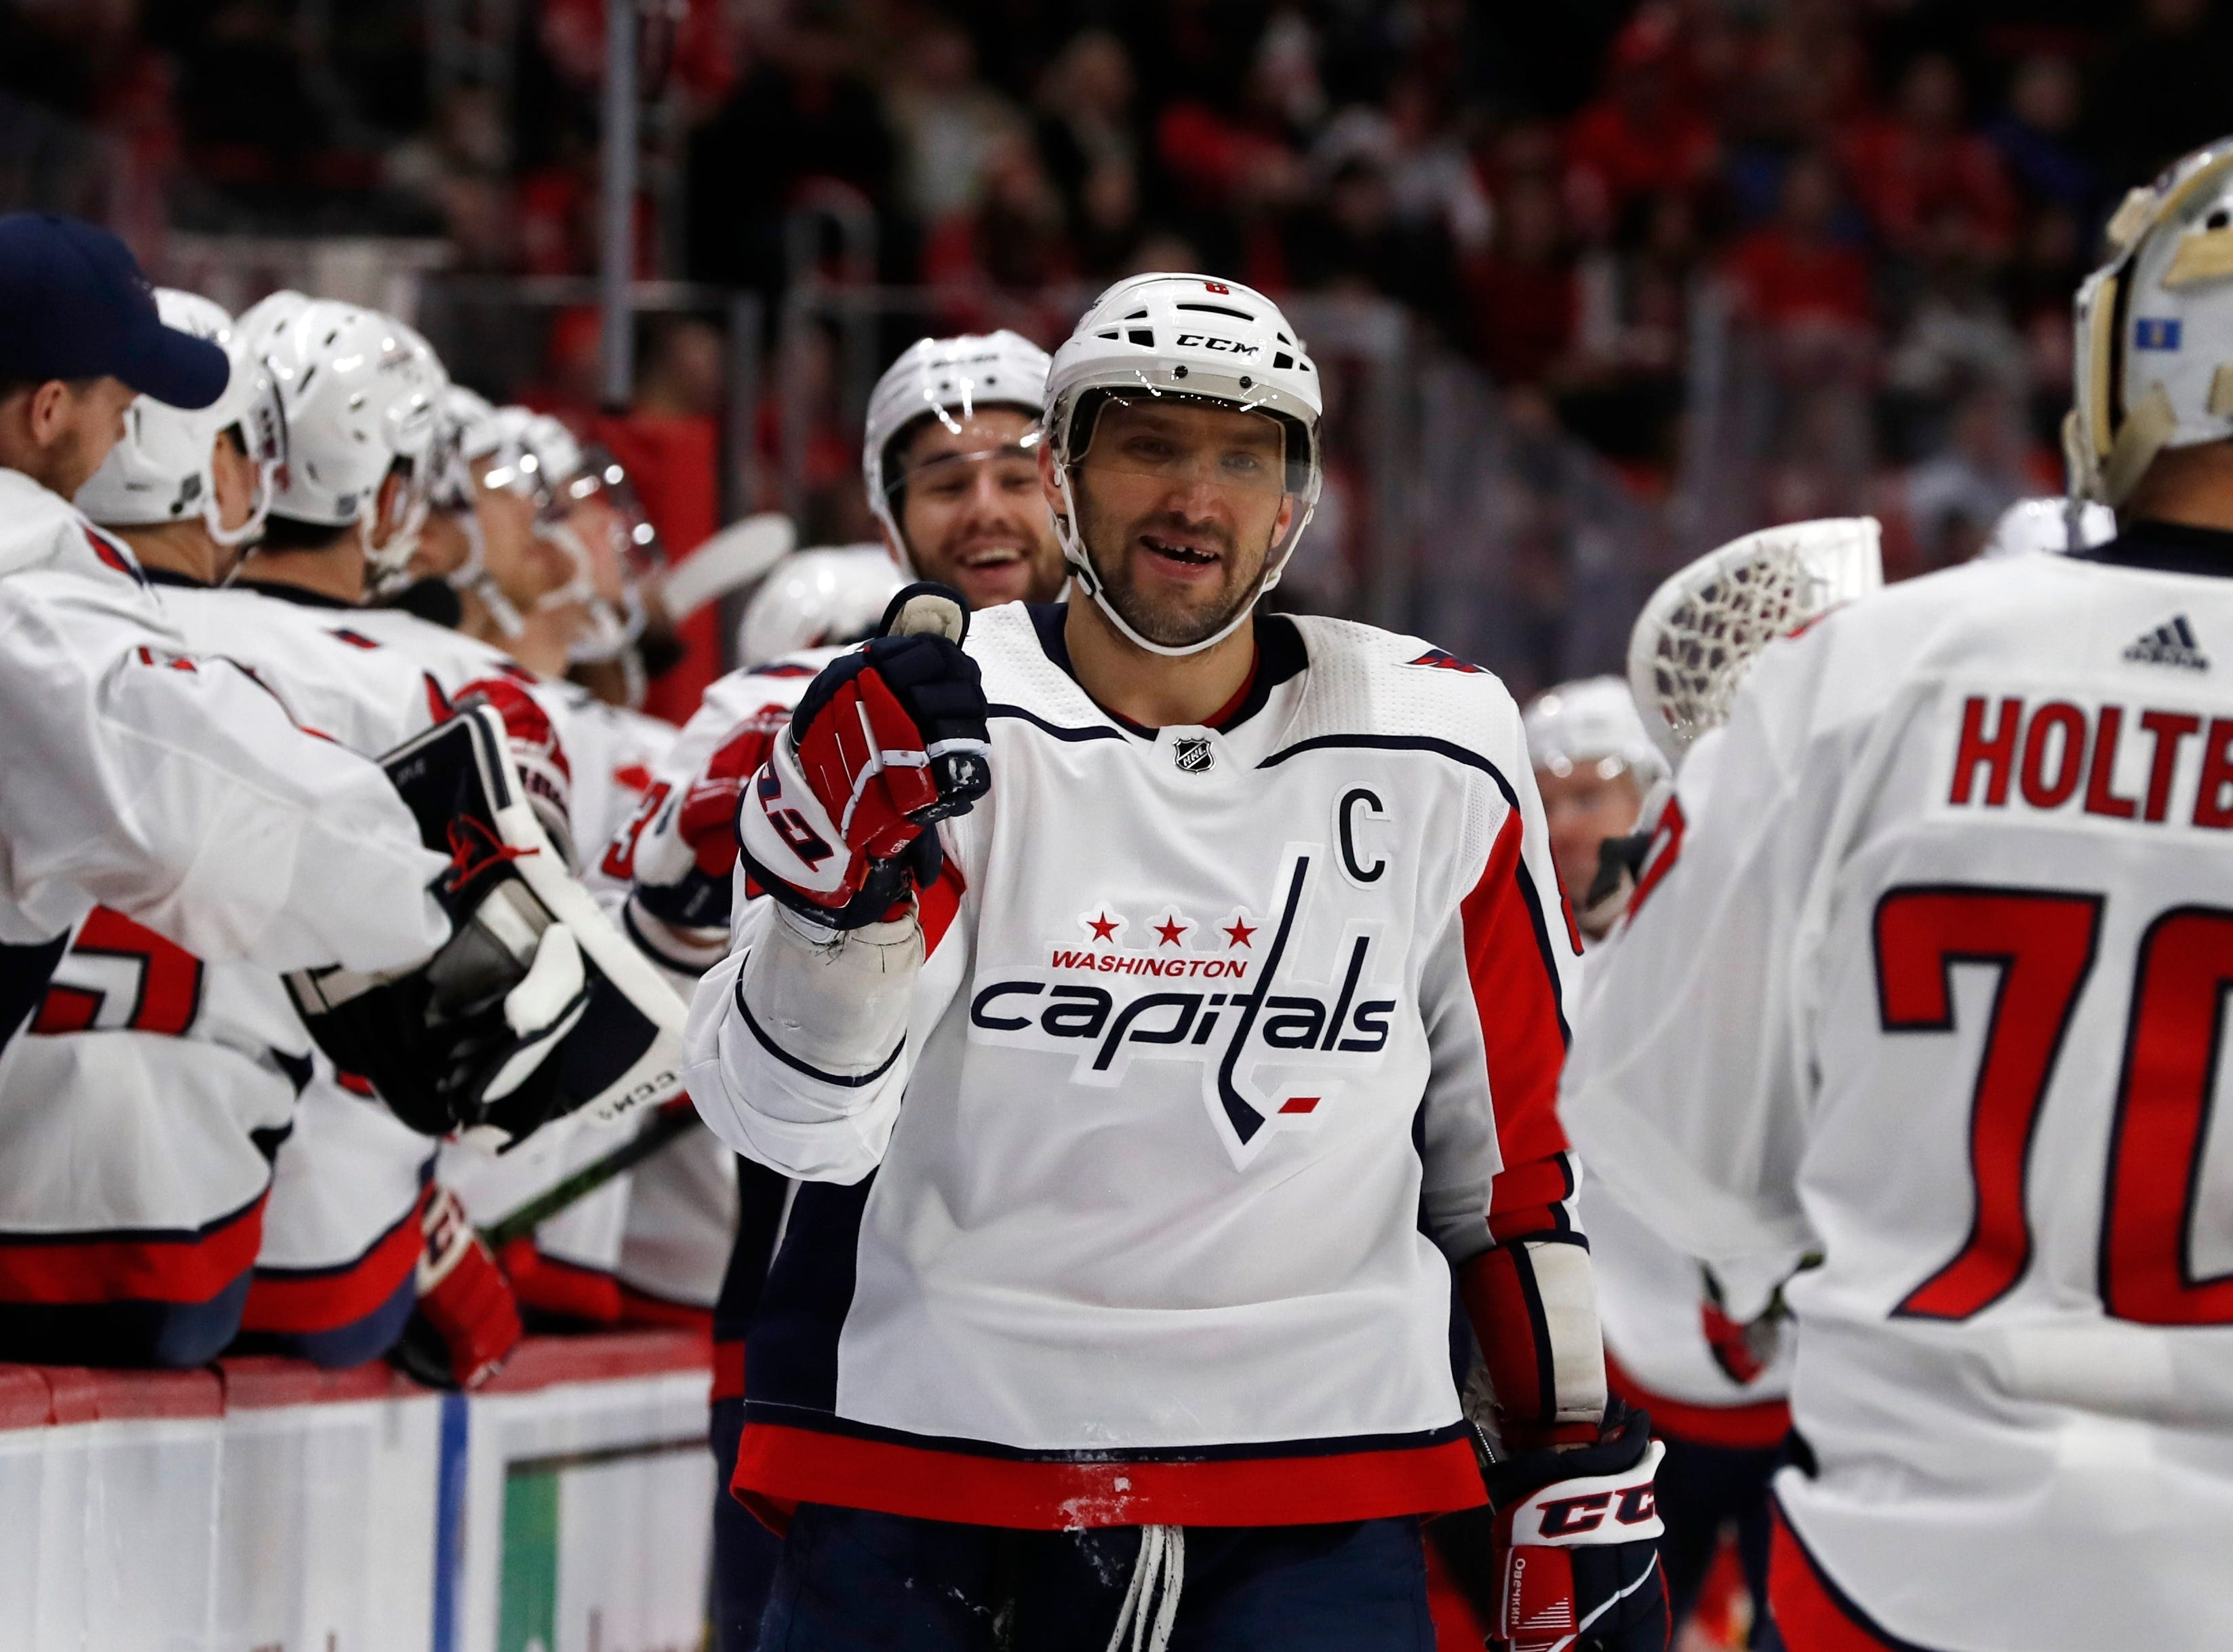 Washington Capitals left wing Alex Ovechkin greets teammates after Tom Wilson scores on Detroit Red Wings goaltender Jimmy Howard during the first period.